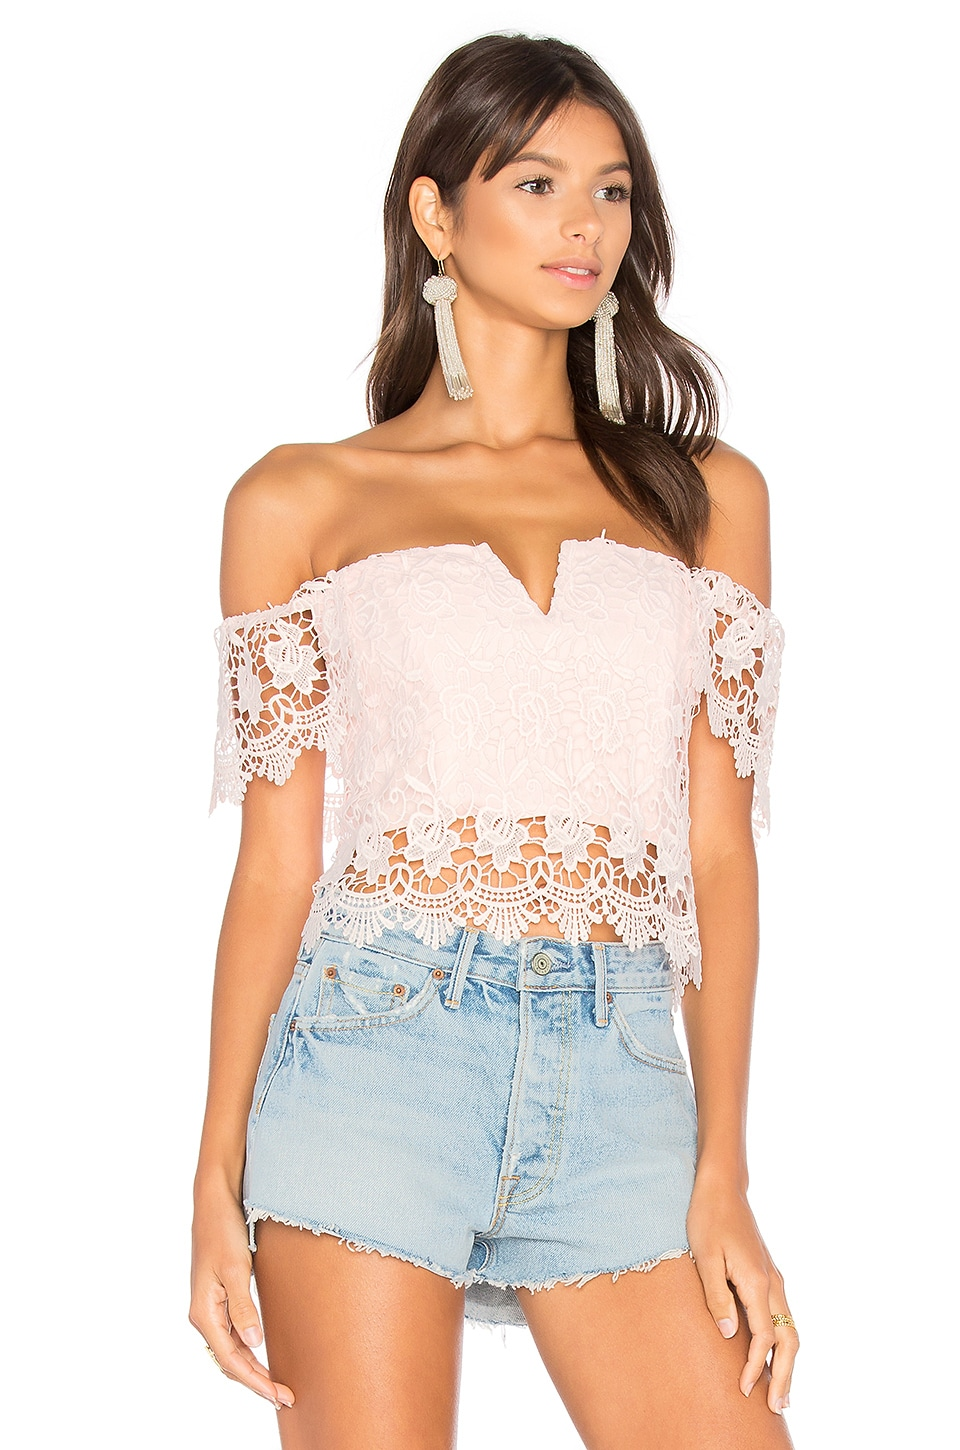 Yumi Kim Hot Stuff Crop Top in Blush Lace